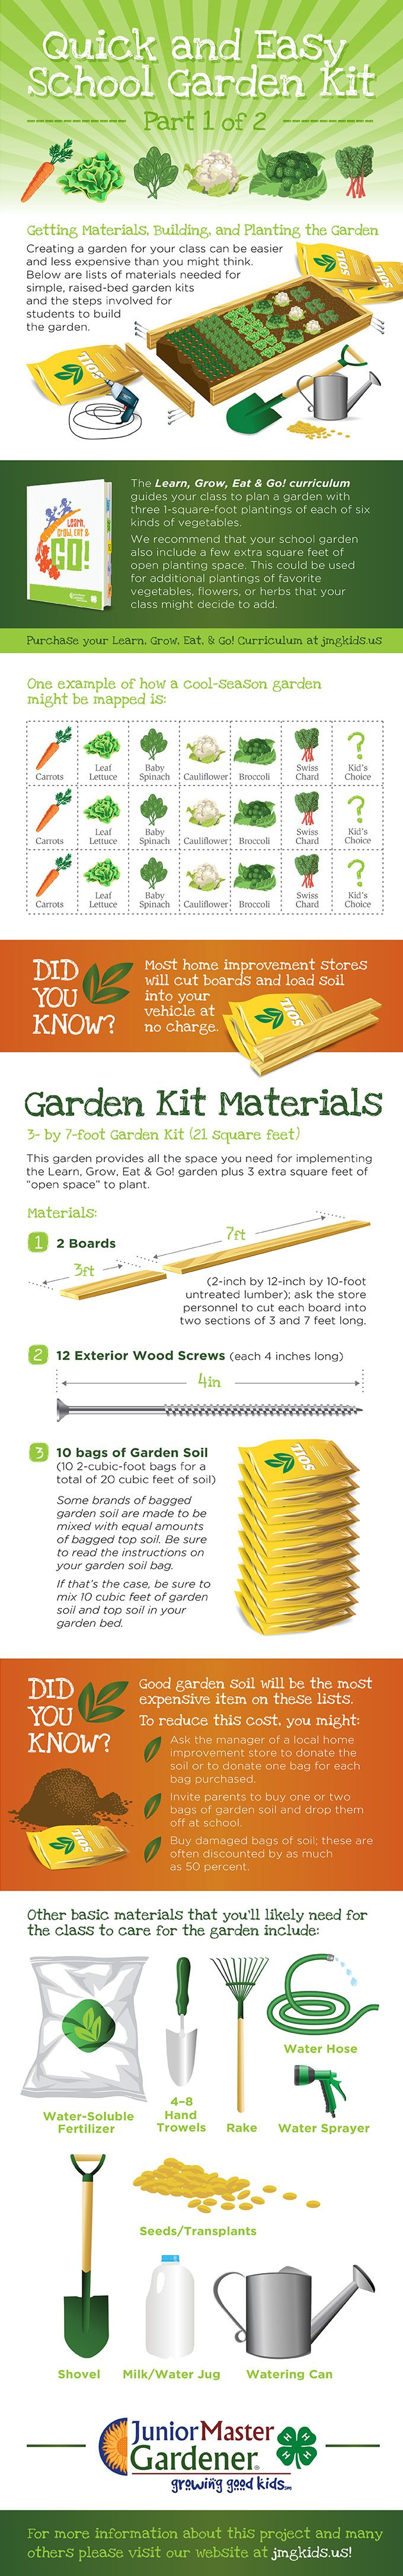 Infographic list of materials to build a Raised Garden Bed for your school or home.